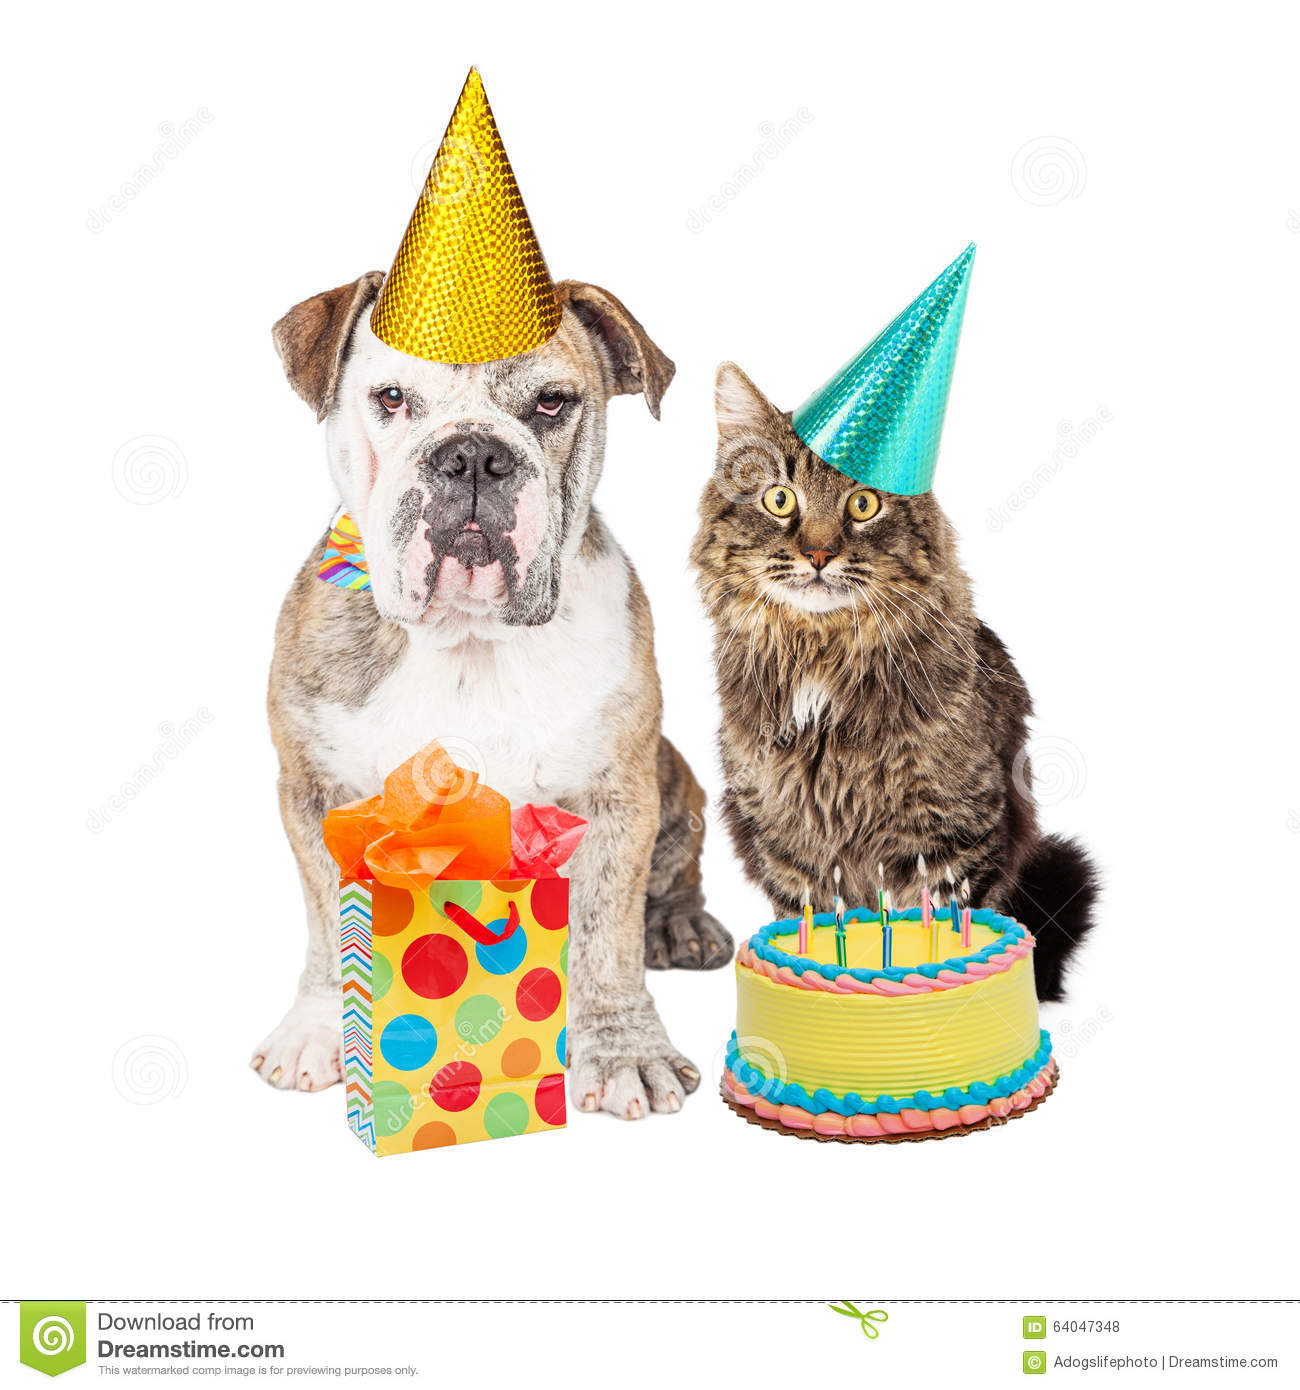 Cute Adult Bulldog Breed Dog And Tabby Cat Wearing Birthday Party Hats With A Cake Present